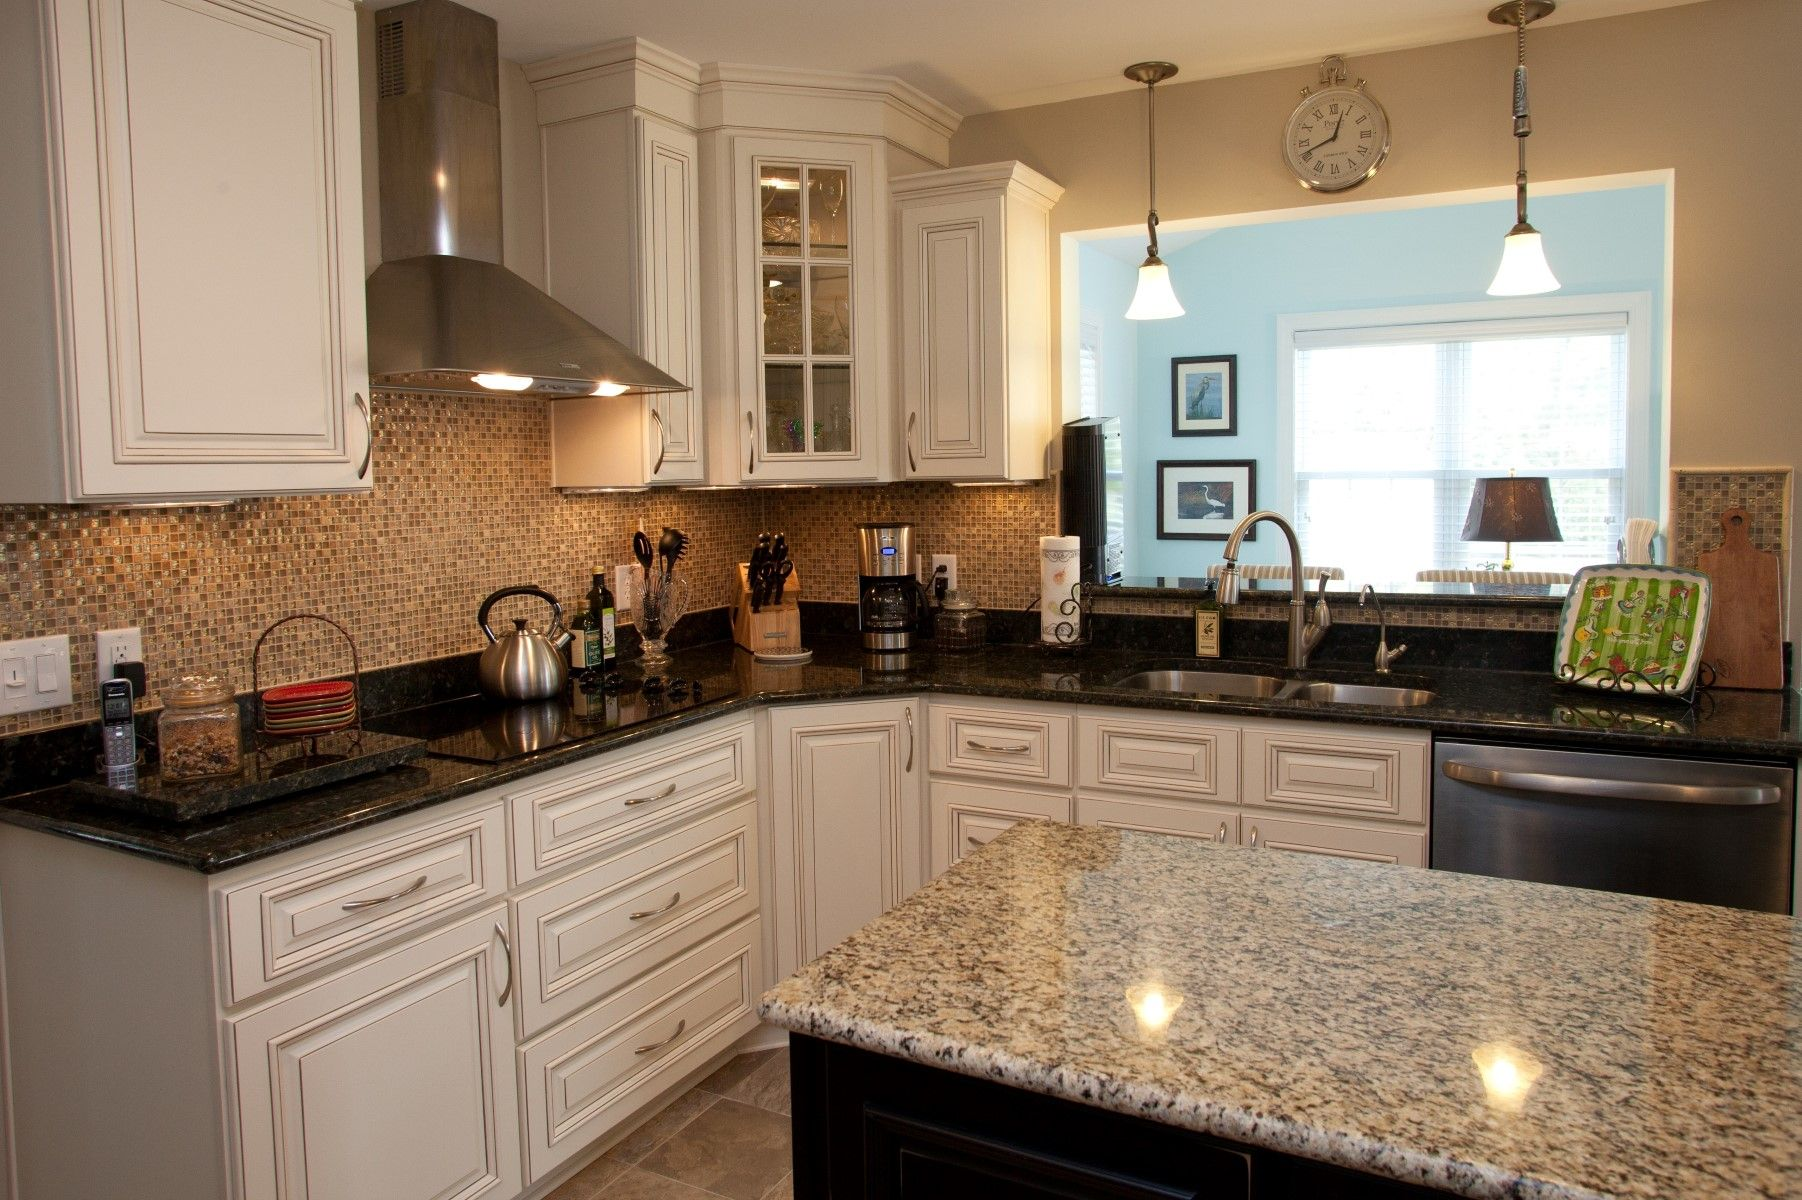 Granite Countertops Colors Kitchen Decorating Your Granite Island Images Kitchen White Granite